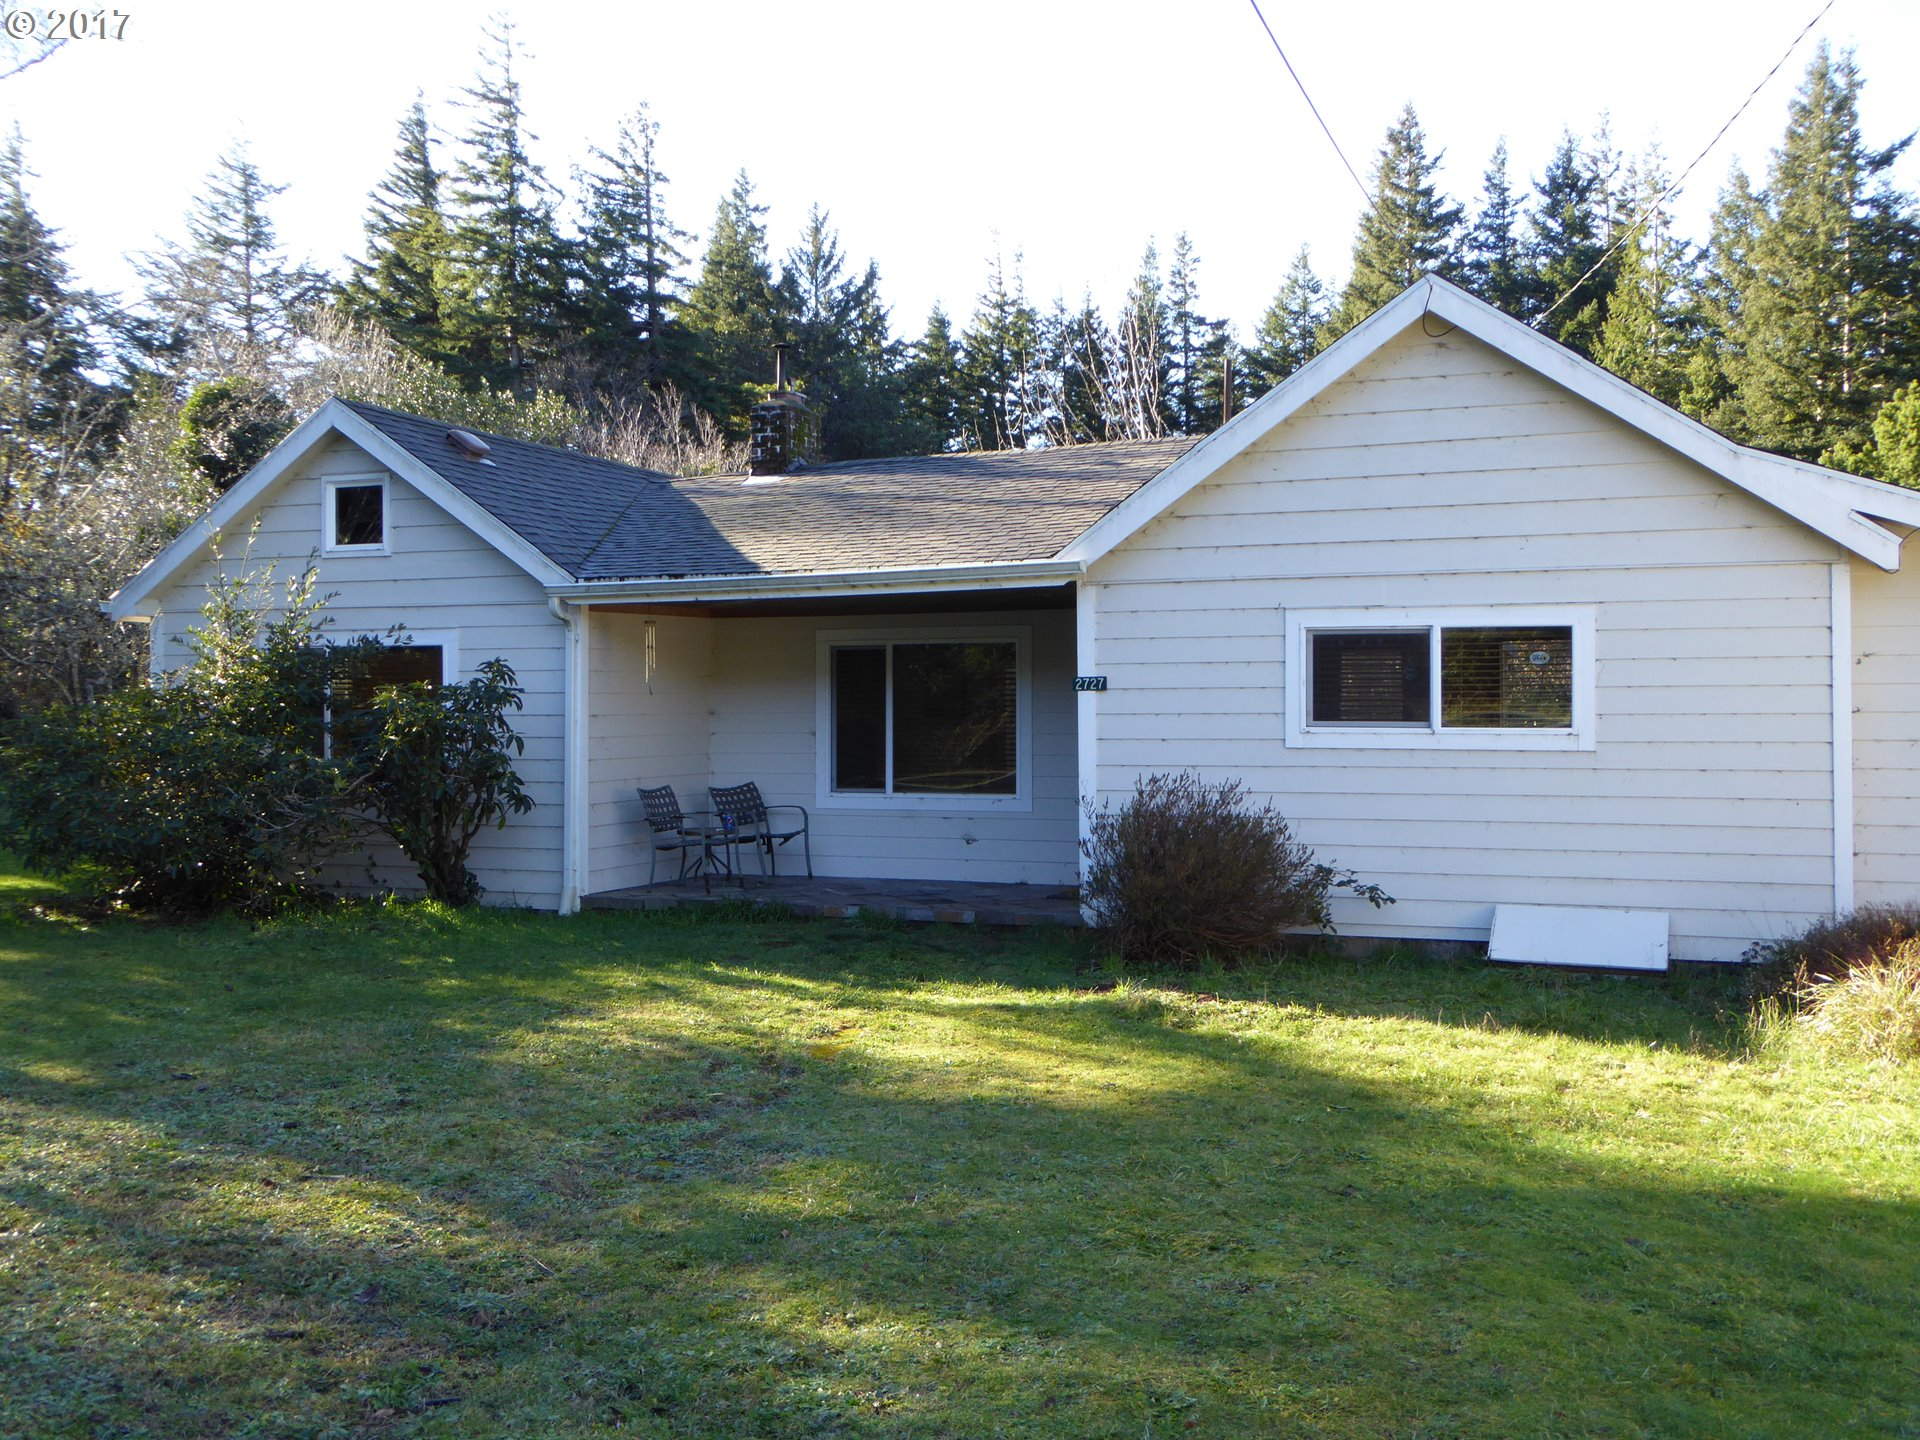 1058 sq. ft 2 bedrooms 2 bathrooms  House For Sale,Port Orford, OR